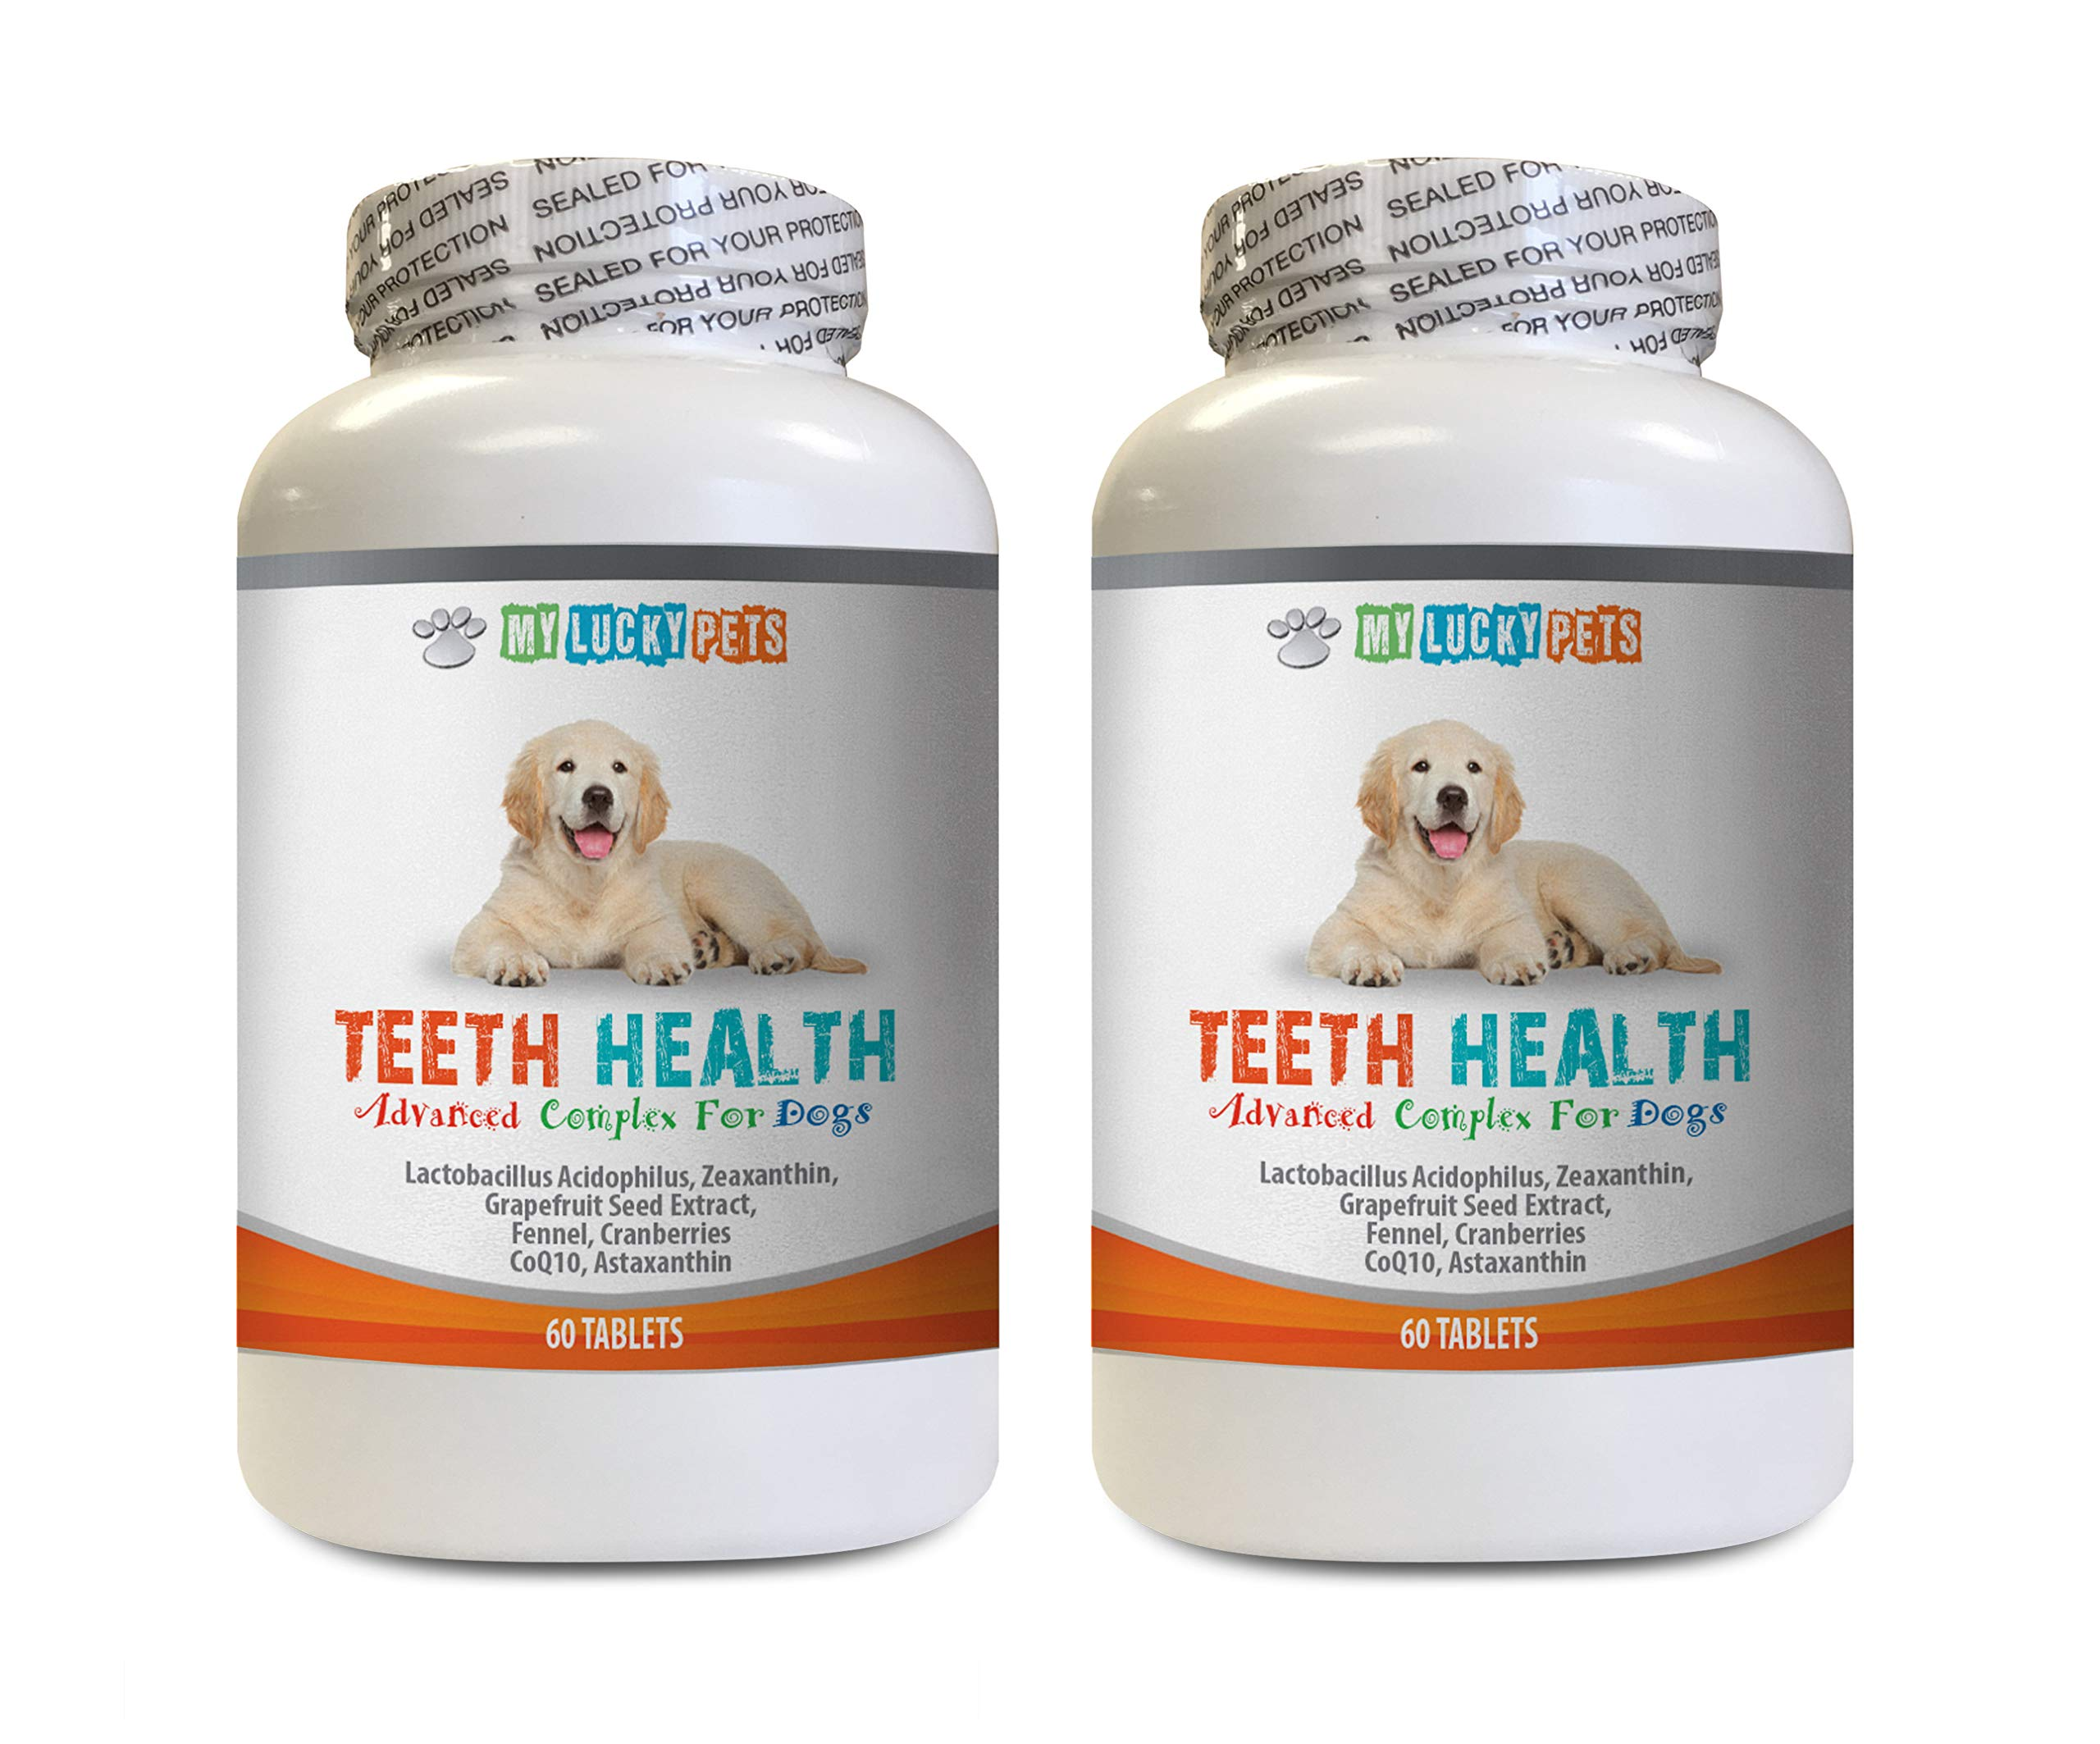 MY LUCKY PETS LLC Dog Teeth Care - Advanced Teeth Health for Dogs - Fights Bad Breath - Best Looking Gums and Teeth - Vitamin c for Dogs Pills - 120 Tablets (2 Bottles) by MY LUCKY PETS LLC